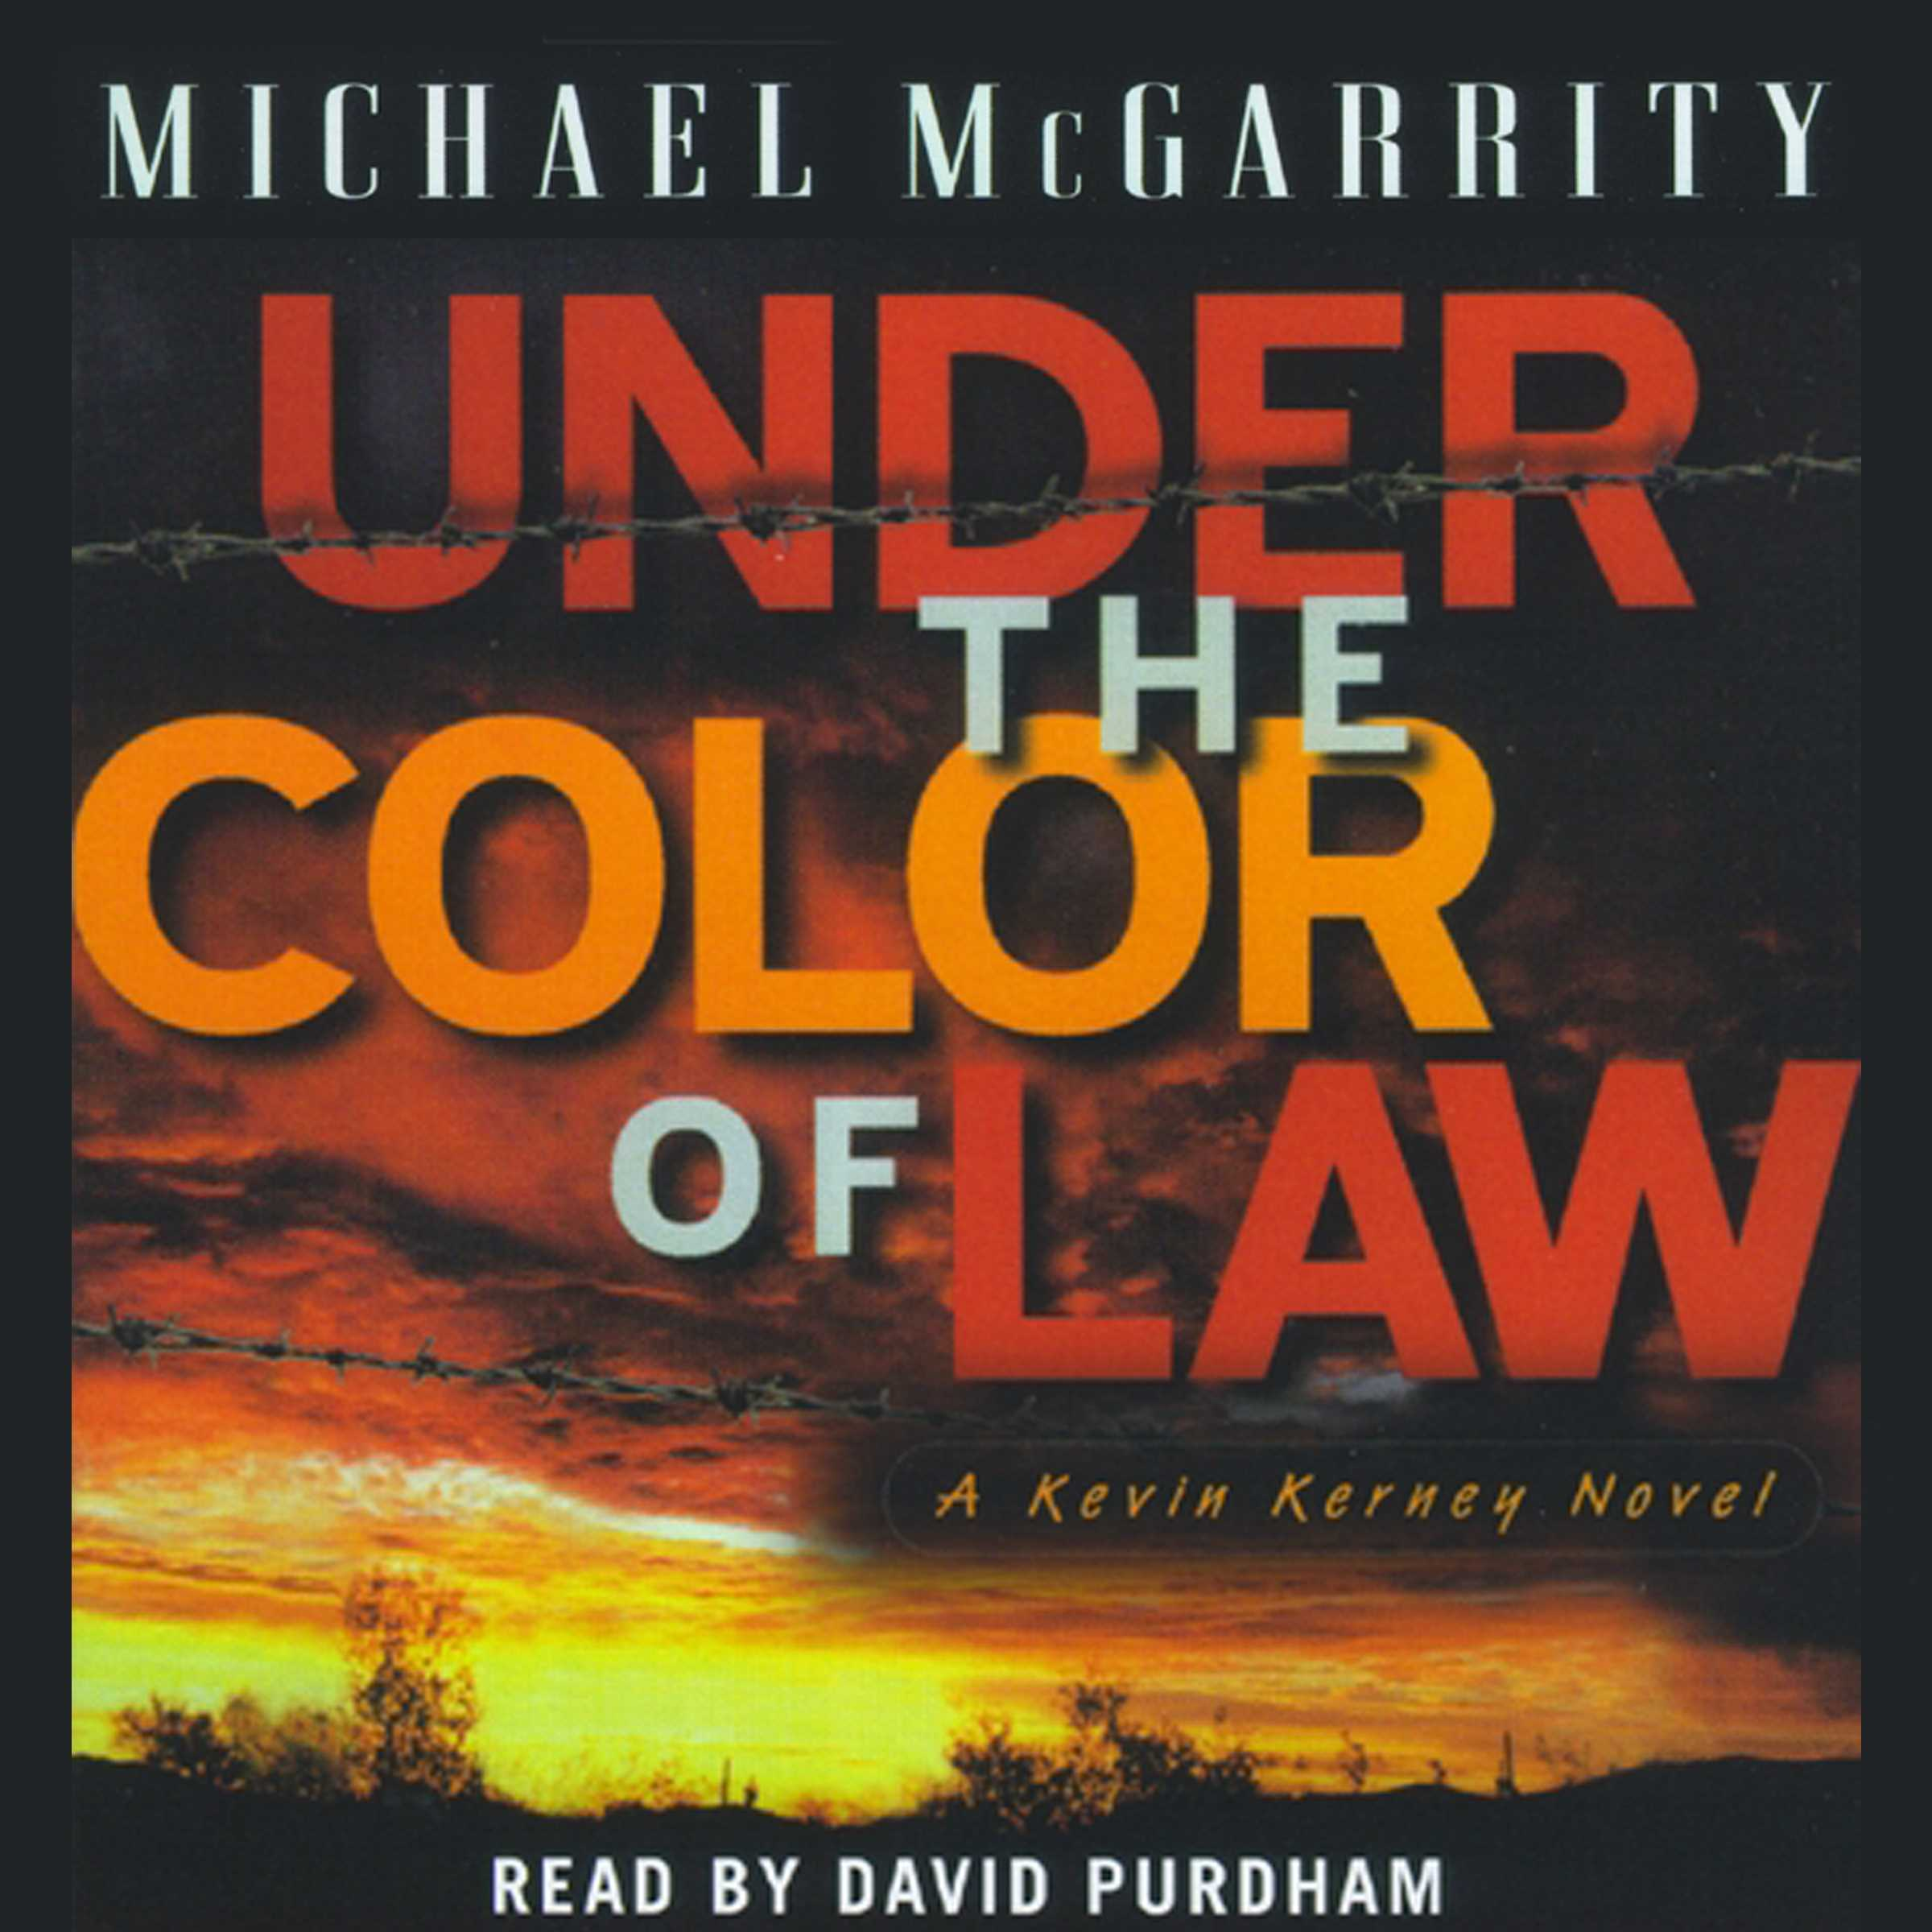 Under-the-color-of-law-9780743549356_hr